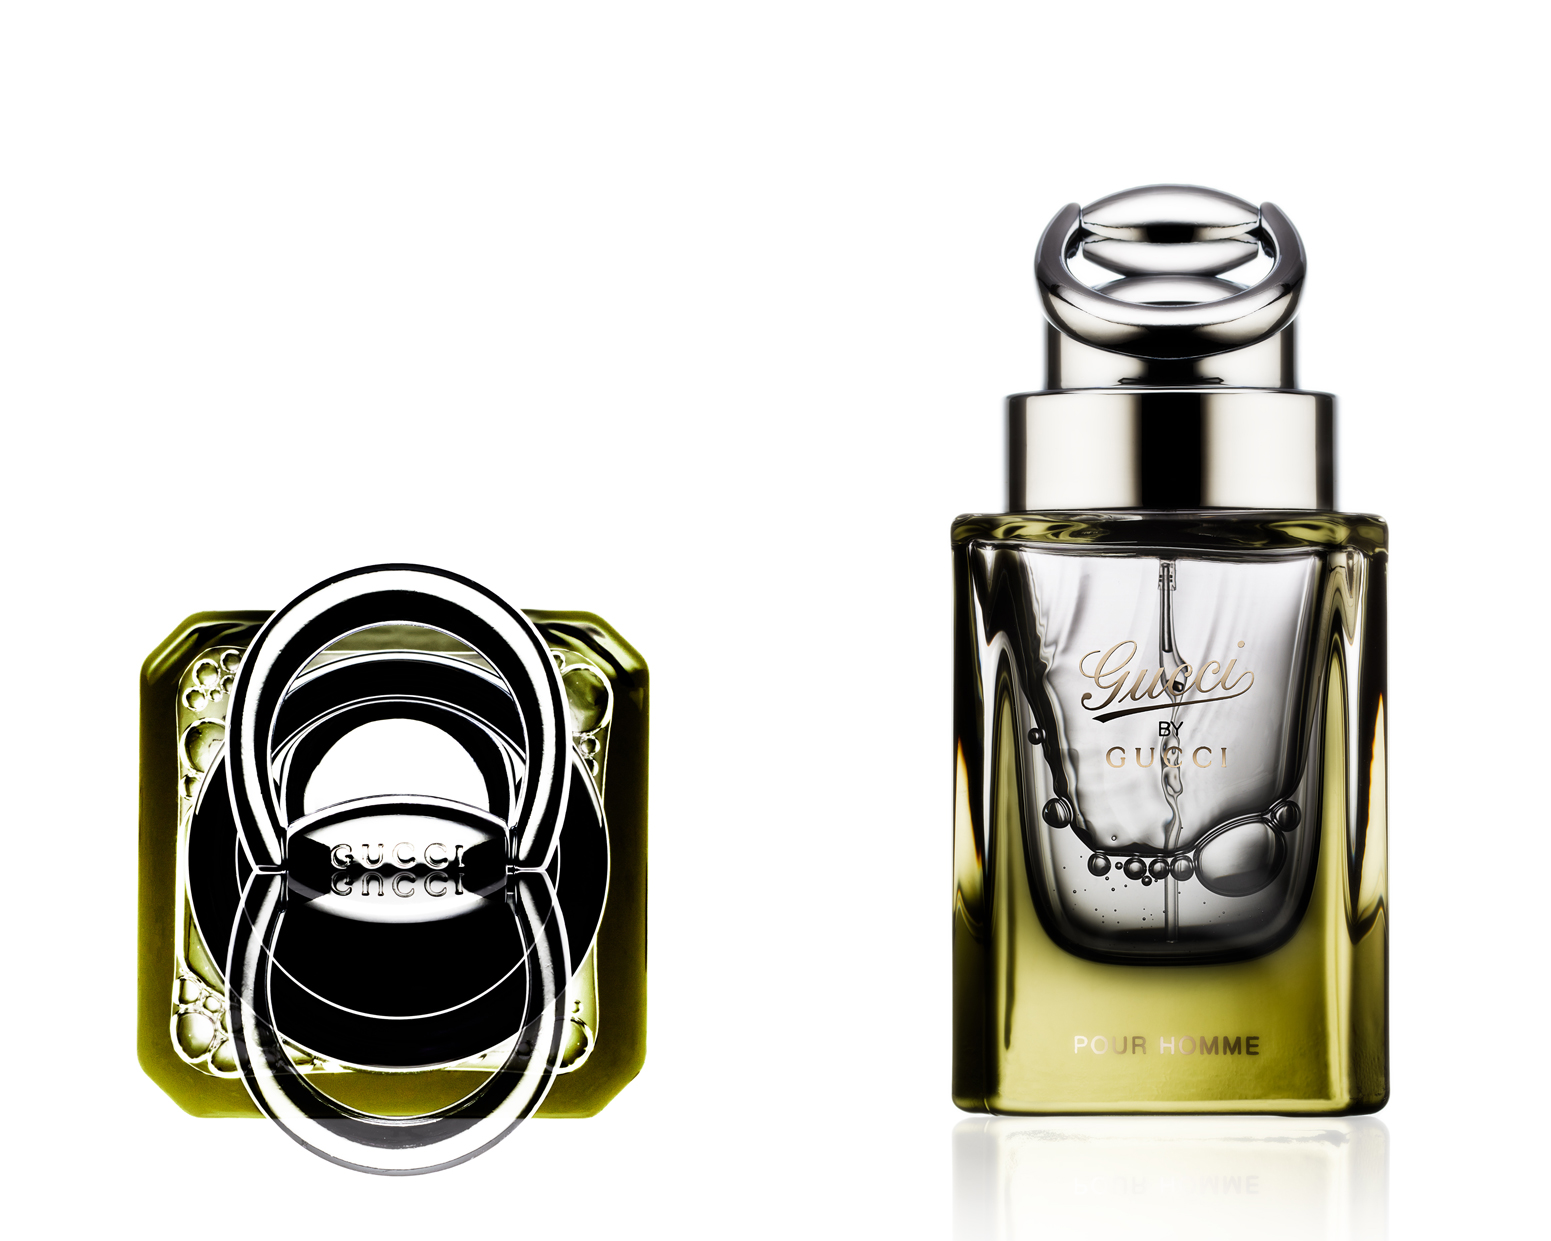 gucci fragrance I